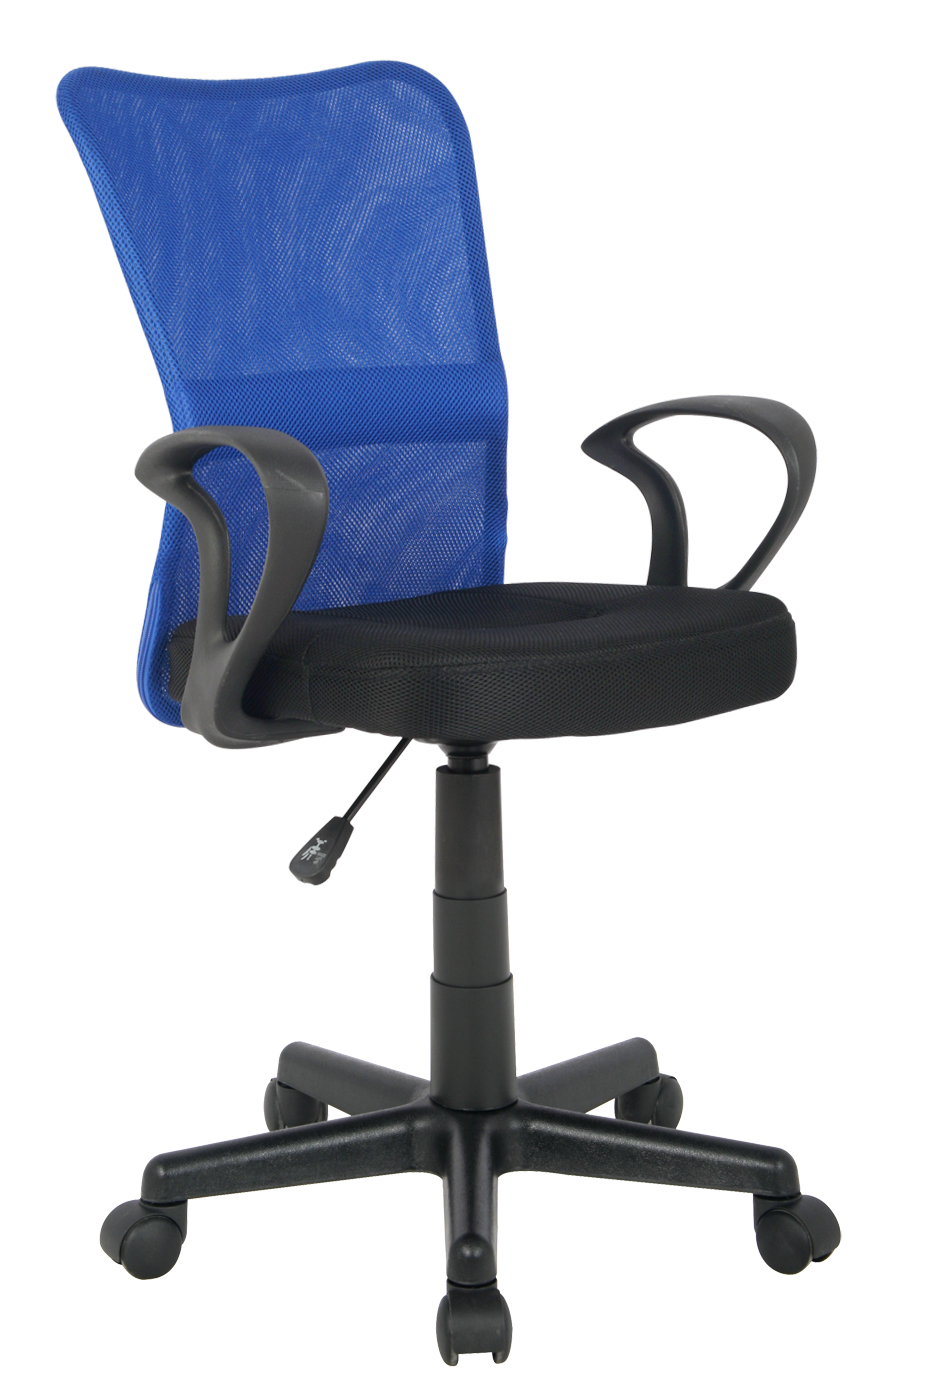 SIXBROS OFFICE SWIVEL CHAIR DIFFERENT COLOURS H 298F eBay : 100021201 <strong>Blue</strong> Office Chair from www.ebay.co.uk size 944 x 1386 jpeg 440kB